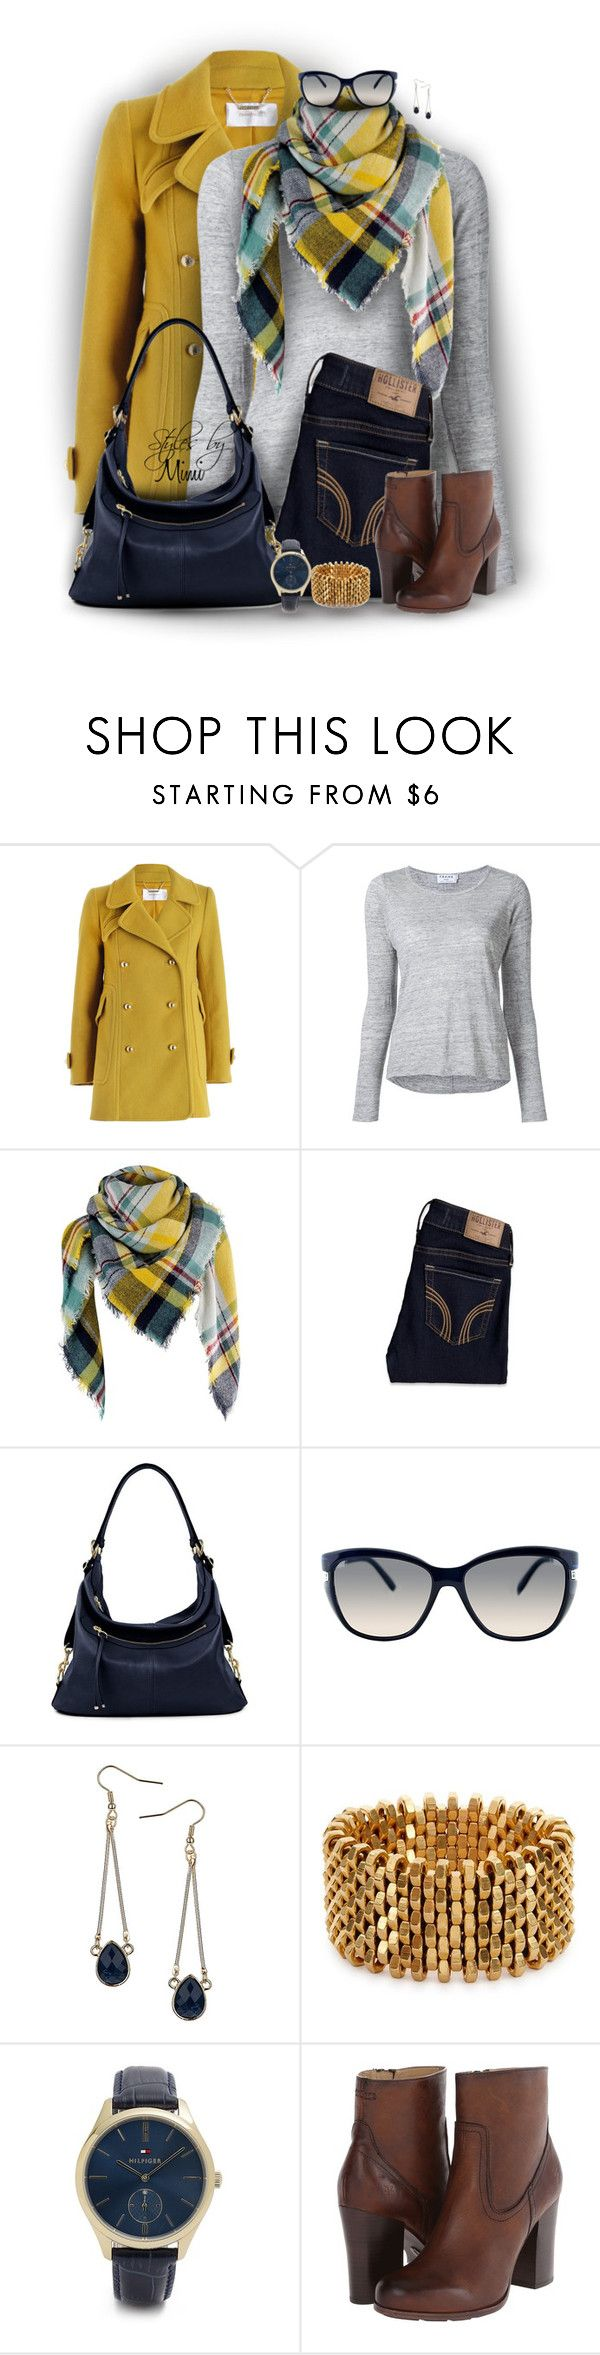 """""""Marigold Plaid (1.7.17)"""" by stylesbymimi ❤ liked on Polyvore featuring Zimmermann, Frame, Hollister Co., Fendi, Dorothy Perkins, Alice Menter, Tommy Hilfiger and Frye"""